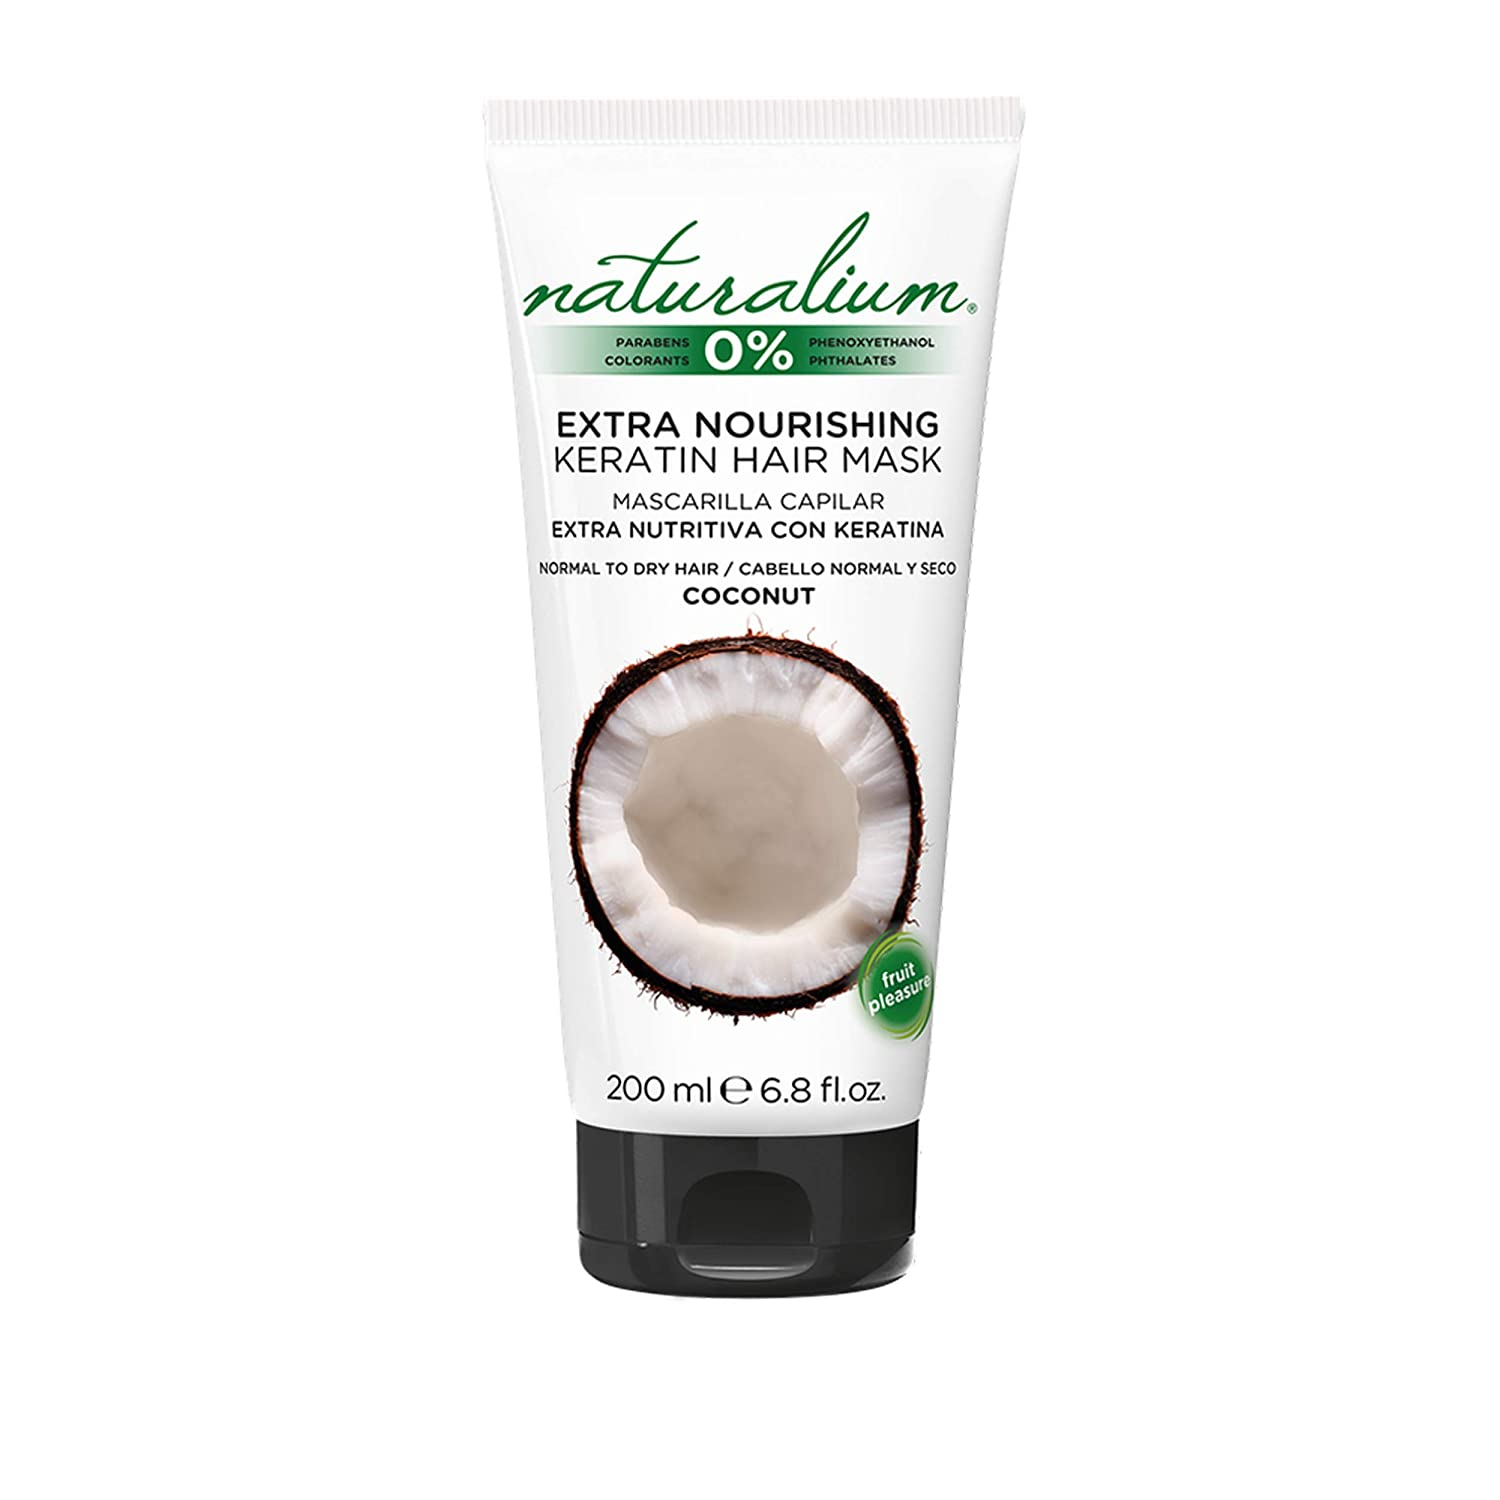 Natural Hair Mask with Repairing Trea New product by Courier shipping free shipping Naturalium Power